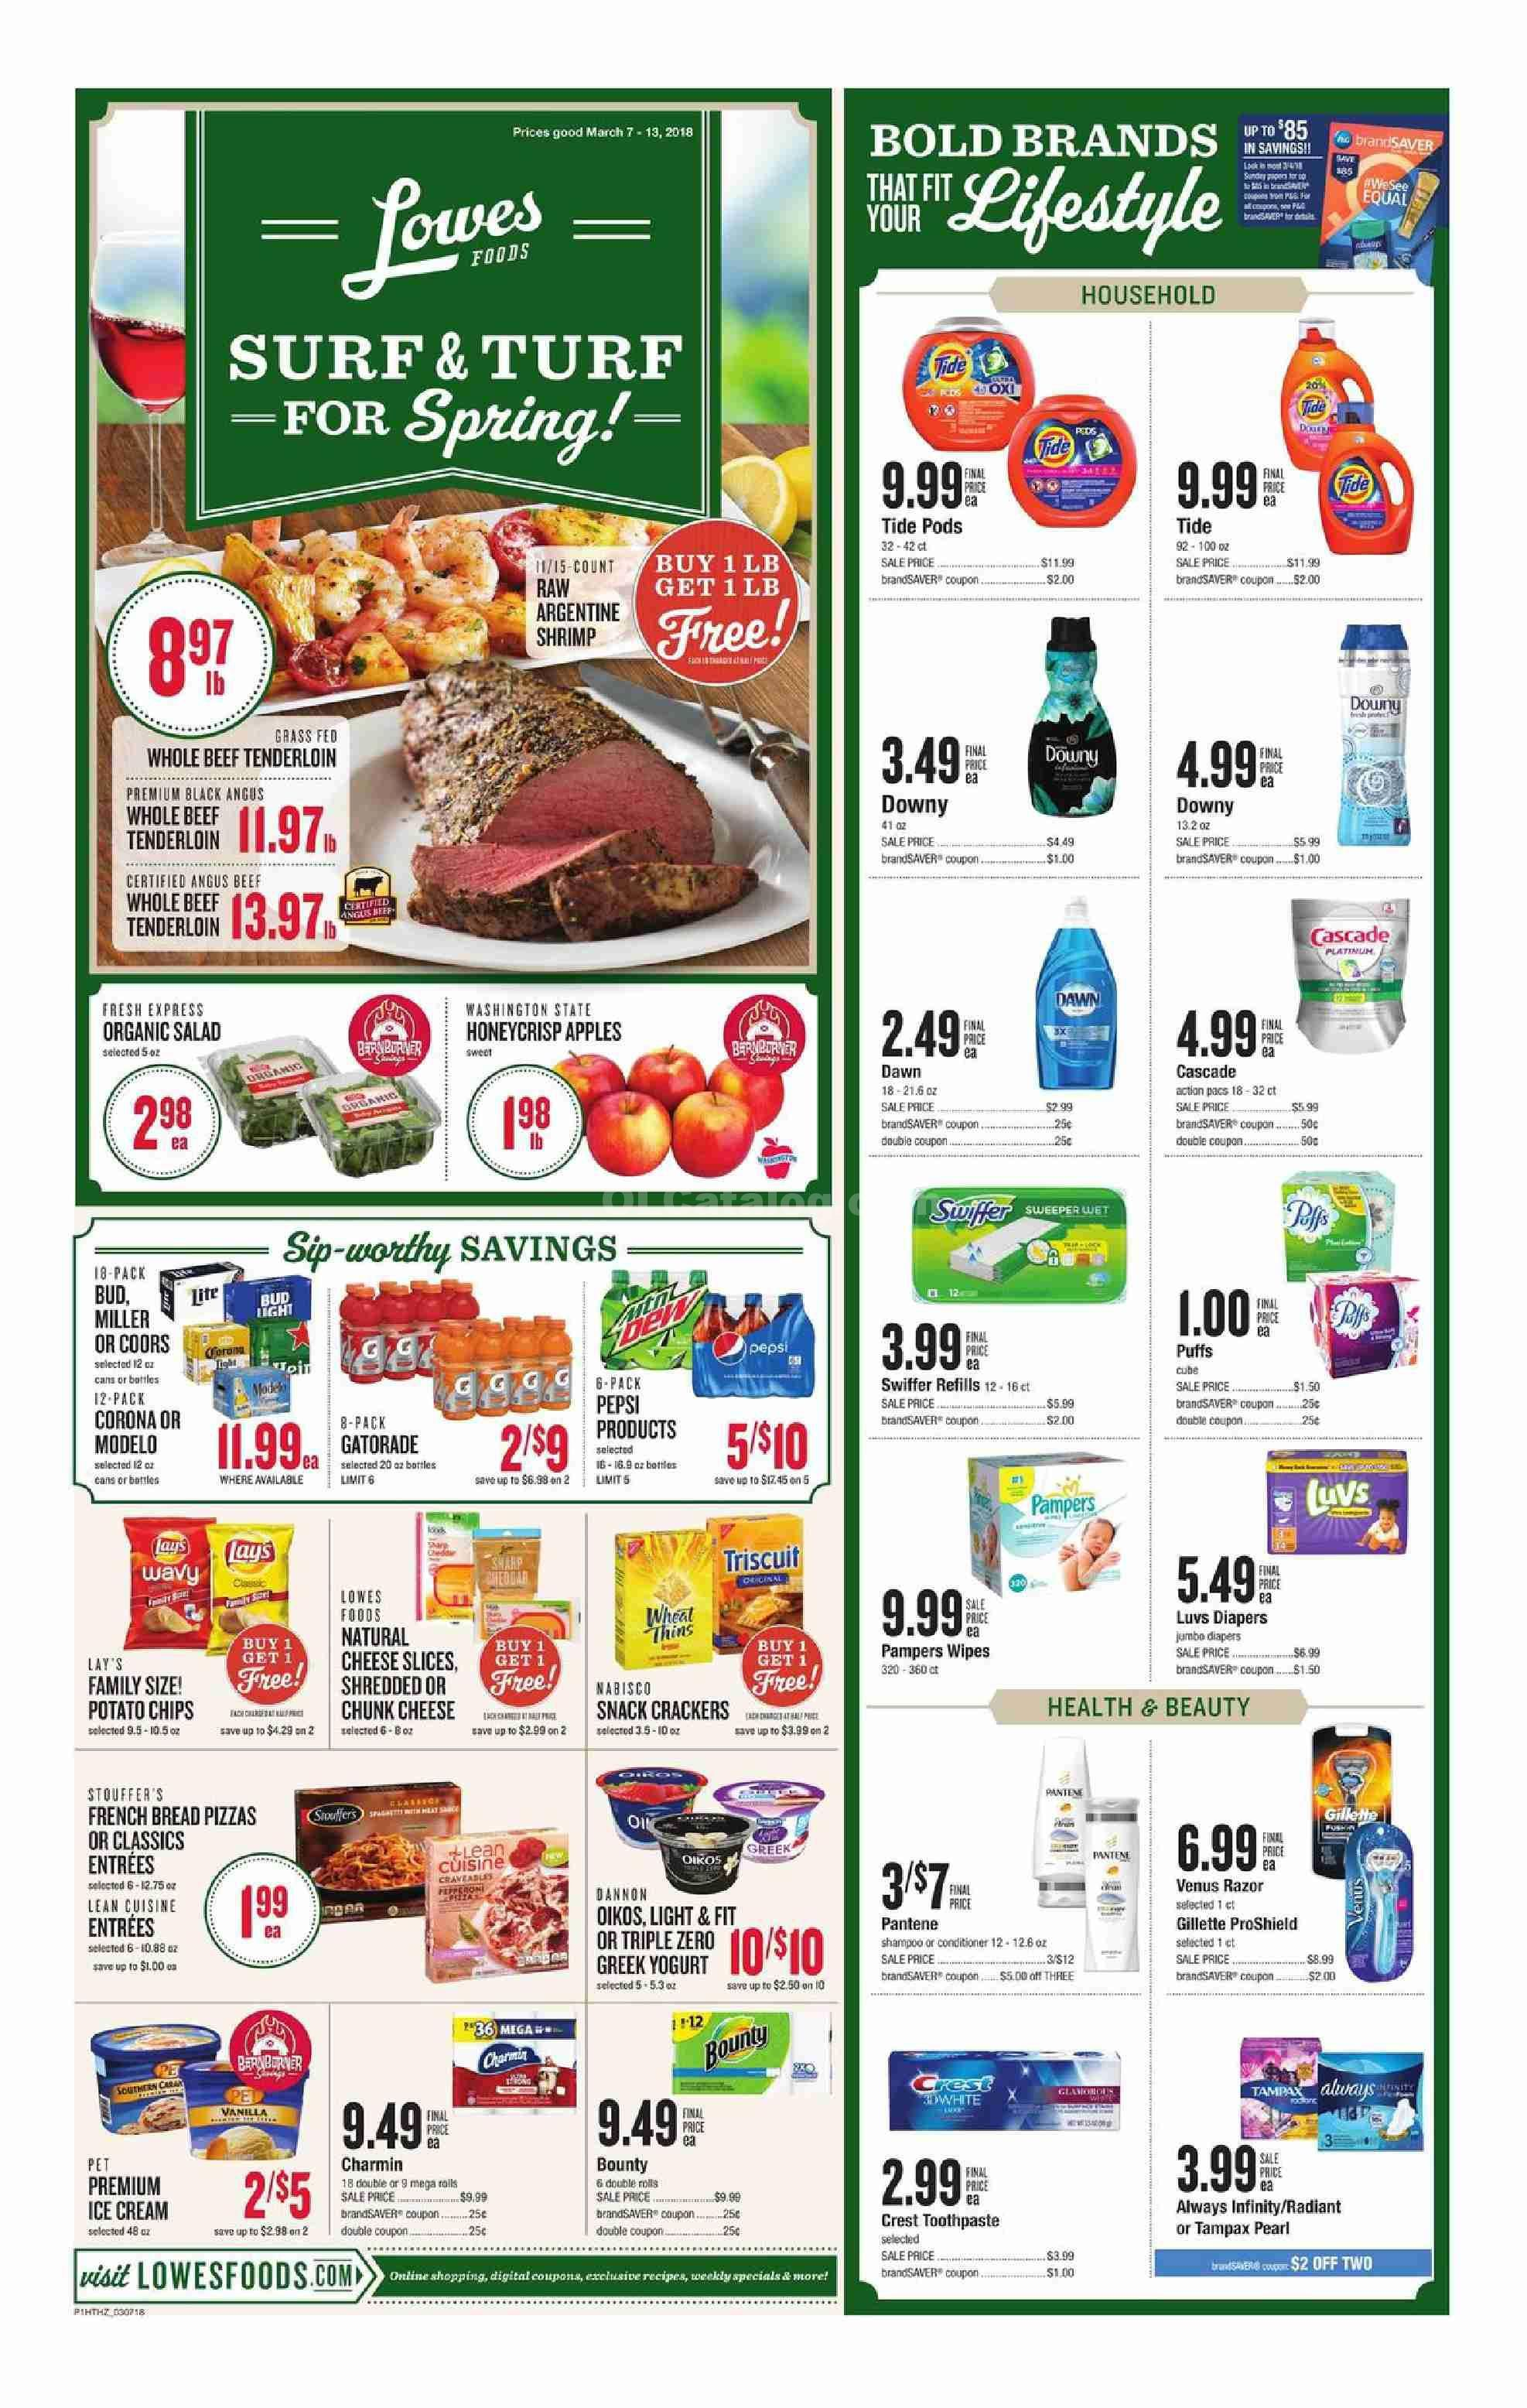 Lowes Foods Christmas Dinners 2020 Lowes Foods Weekly Ad March 7   13, 2018   http://.olcatalog